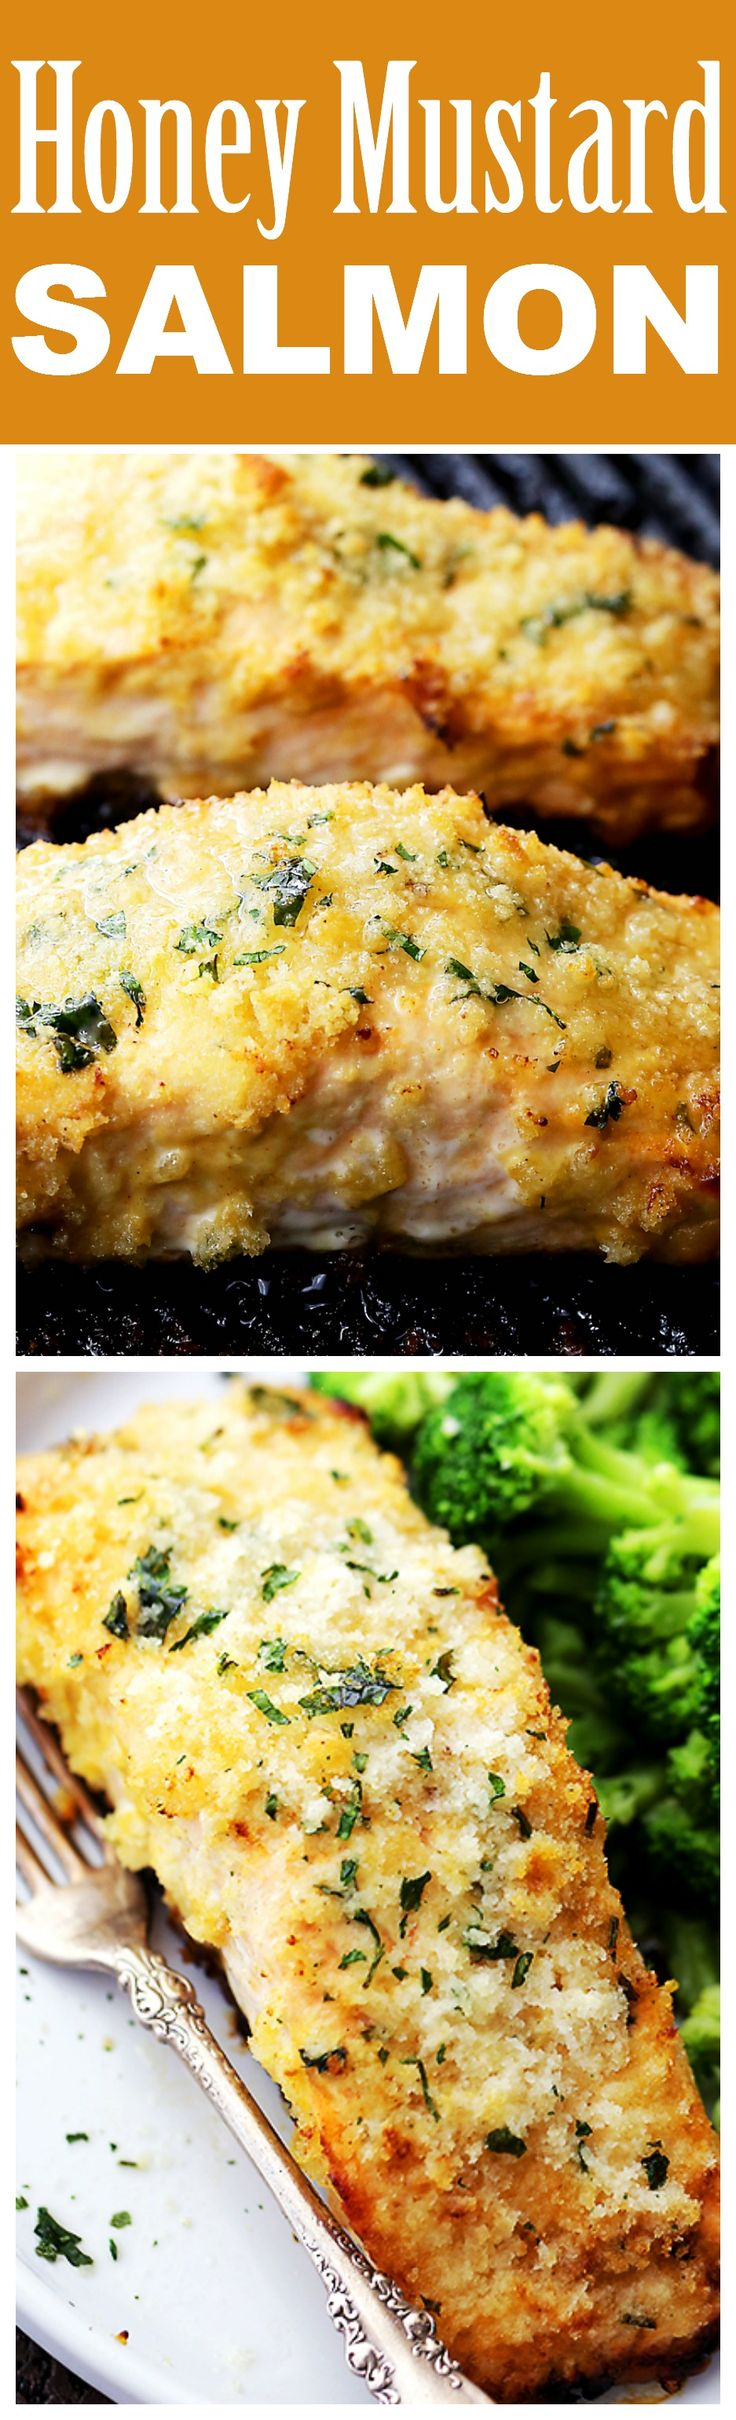 HONEY MUSTARD SALMON! Flavorful and juicy salmon fillets brushed with ...